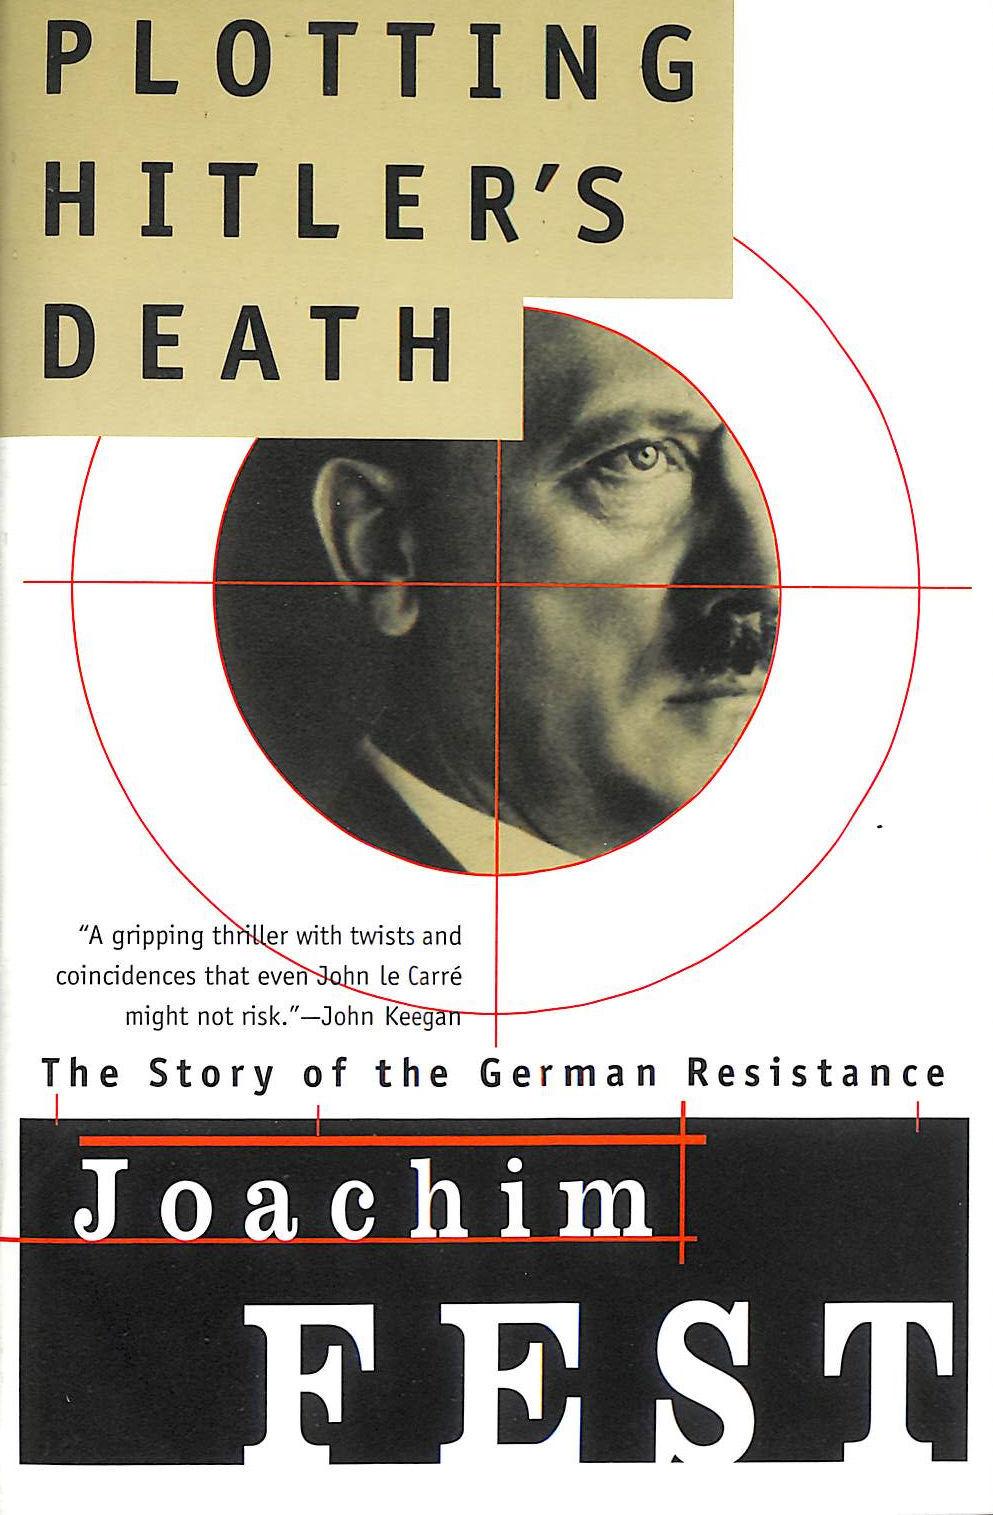 Image for Plotting Hitler's Death: The Story of German Resistance